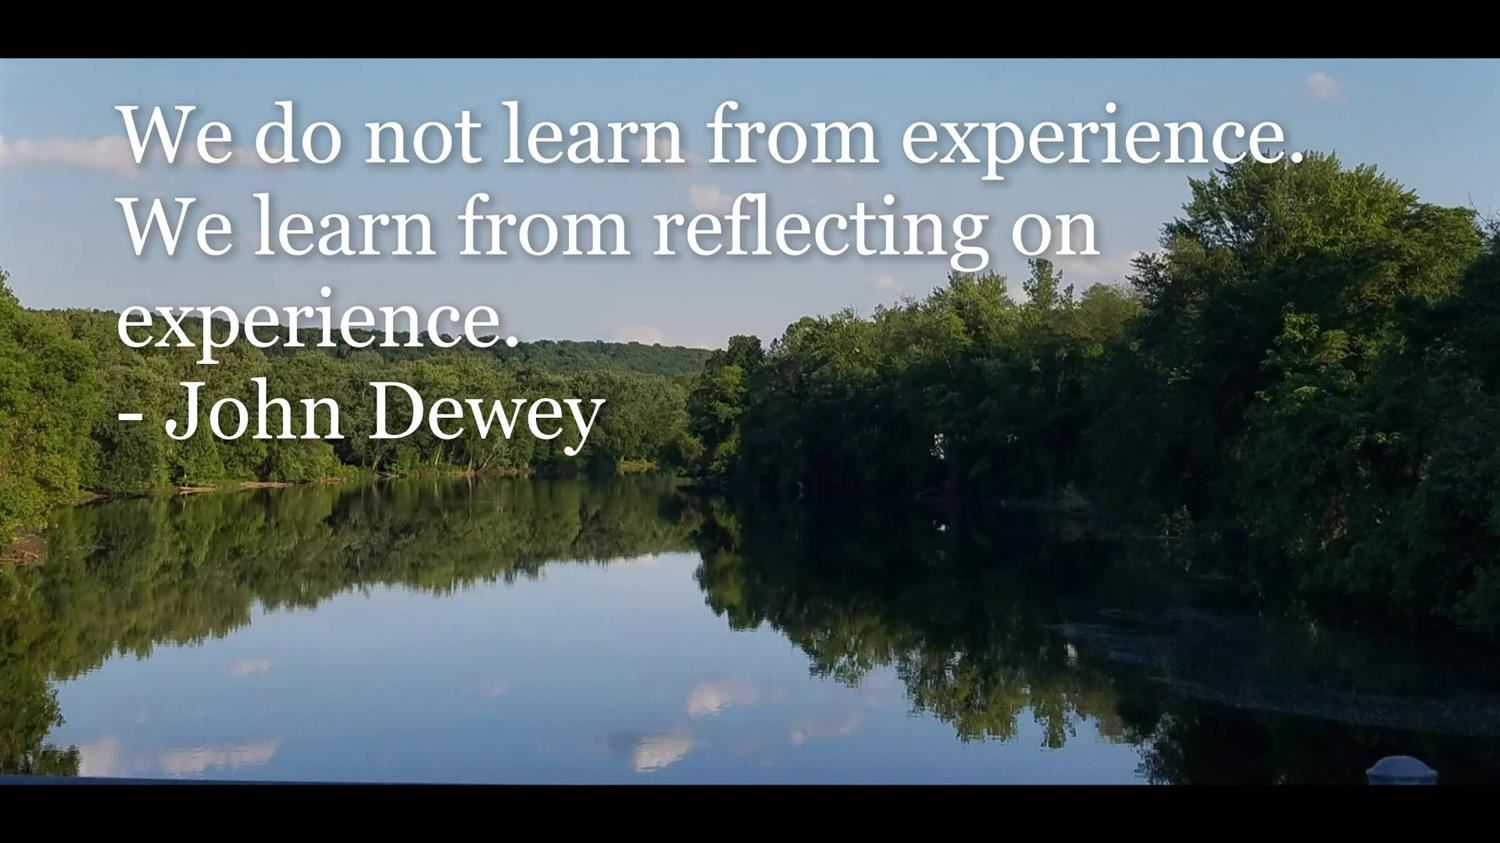 We do not learn from experience.  We learn from reflecting on experience. - John Dewey